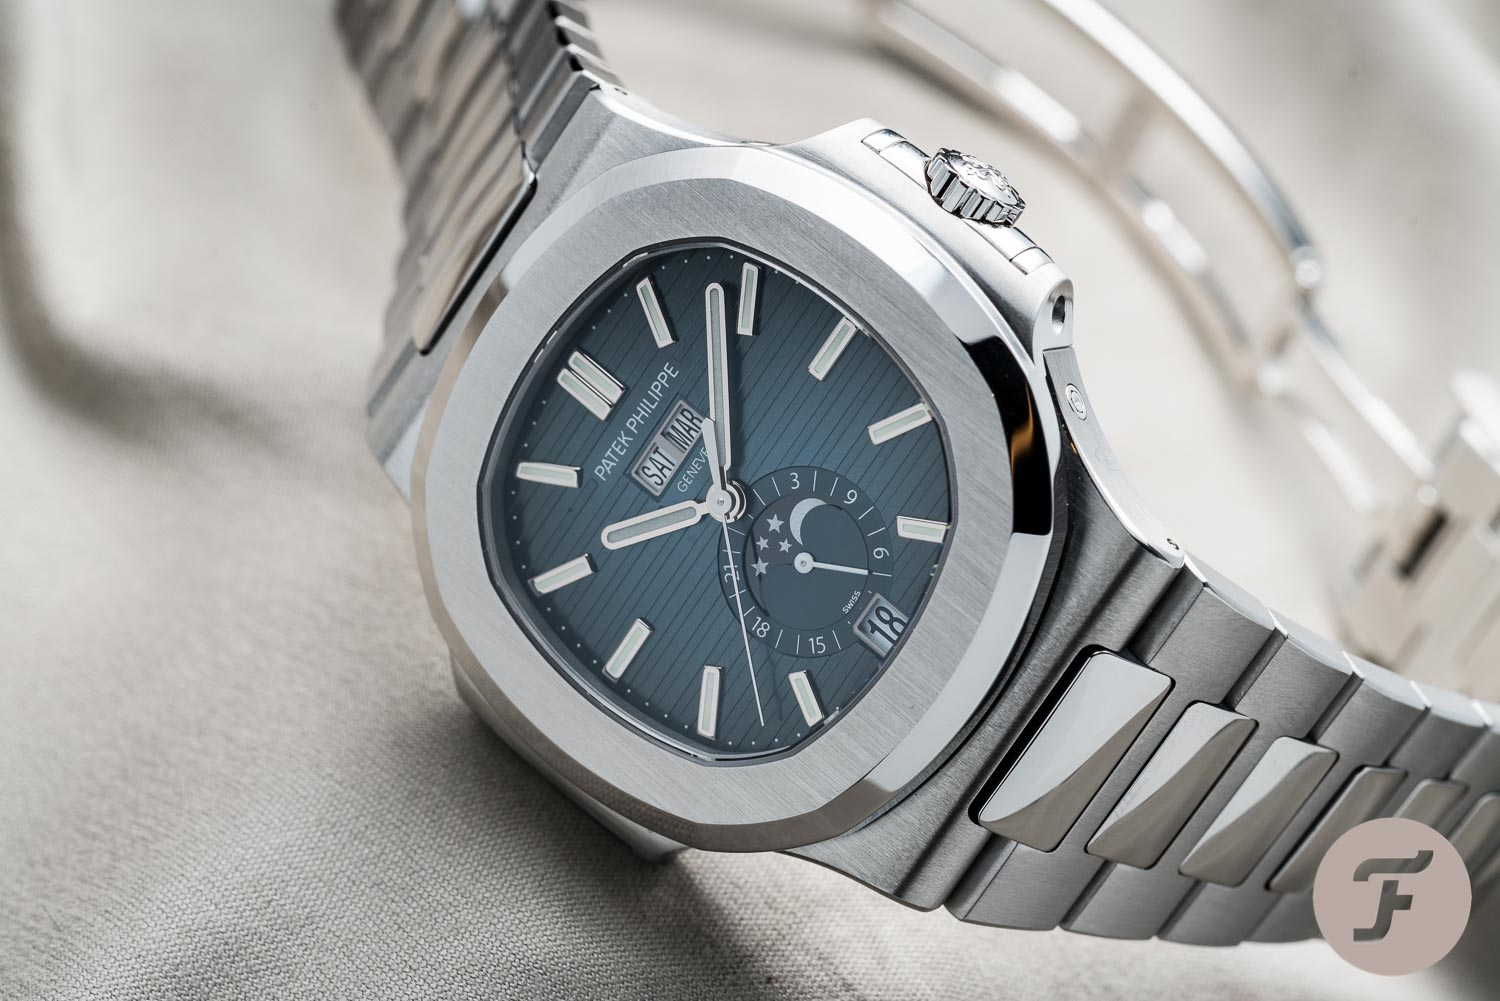 Hands On The Patek Philippe Nautilus 5726 1a